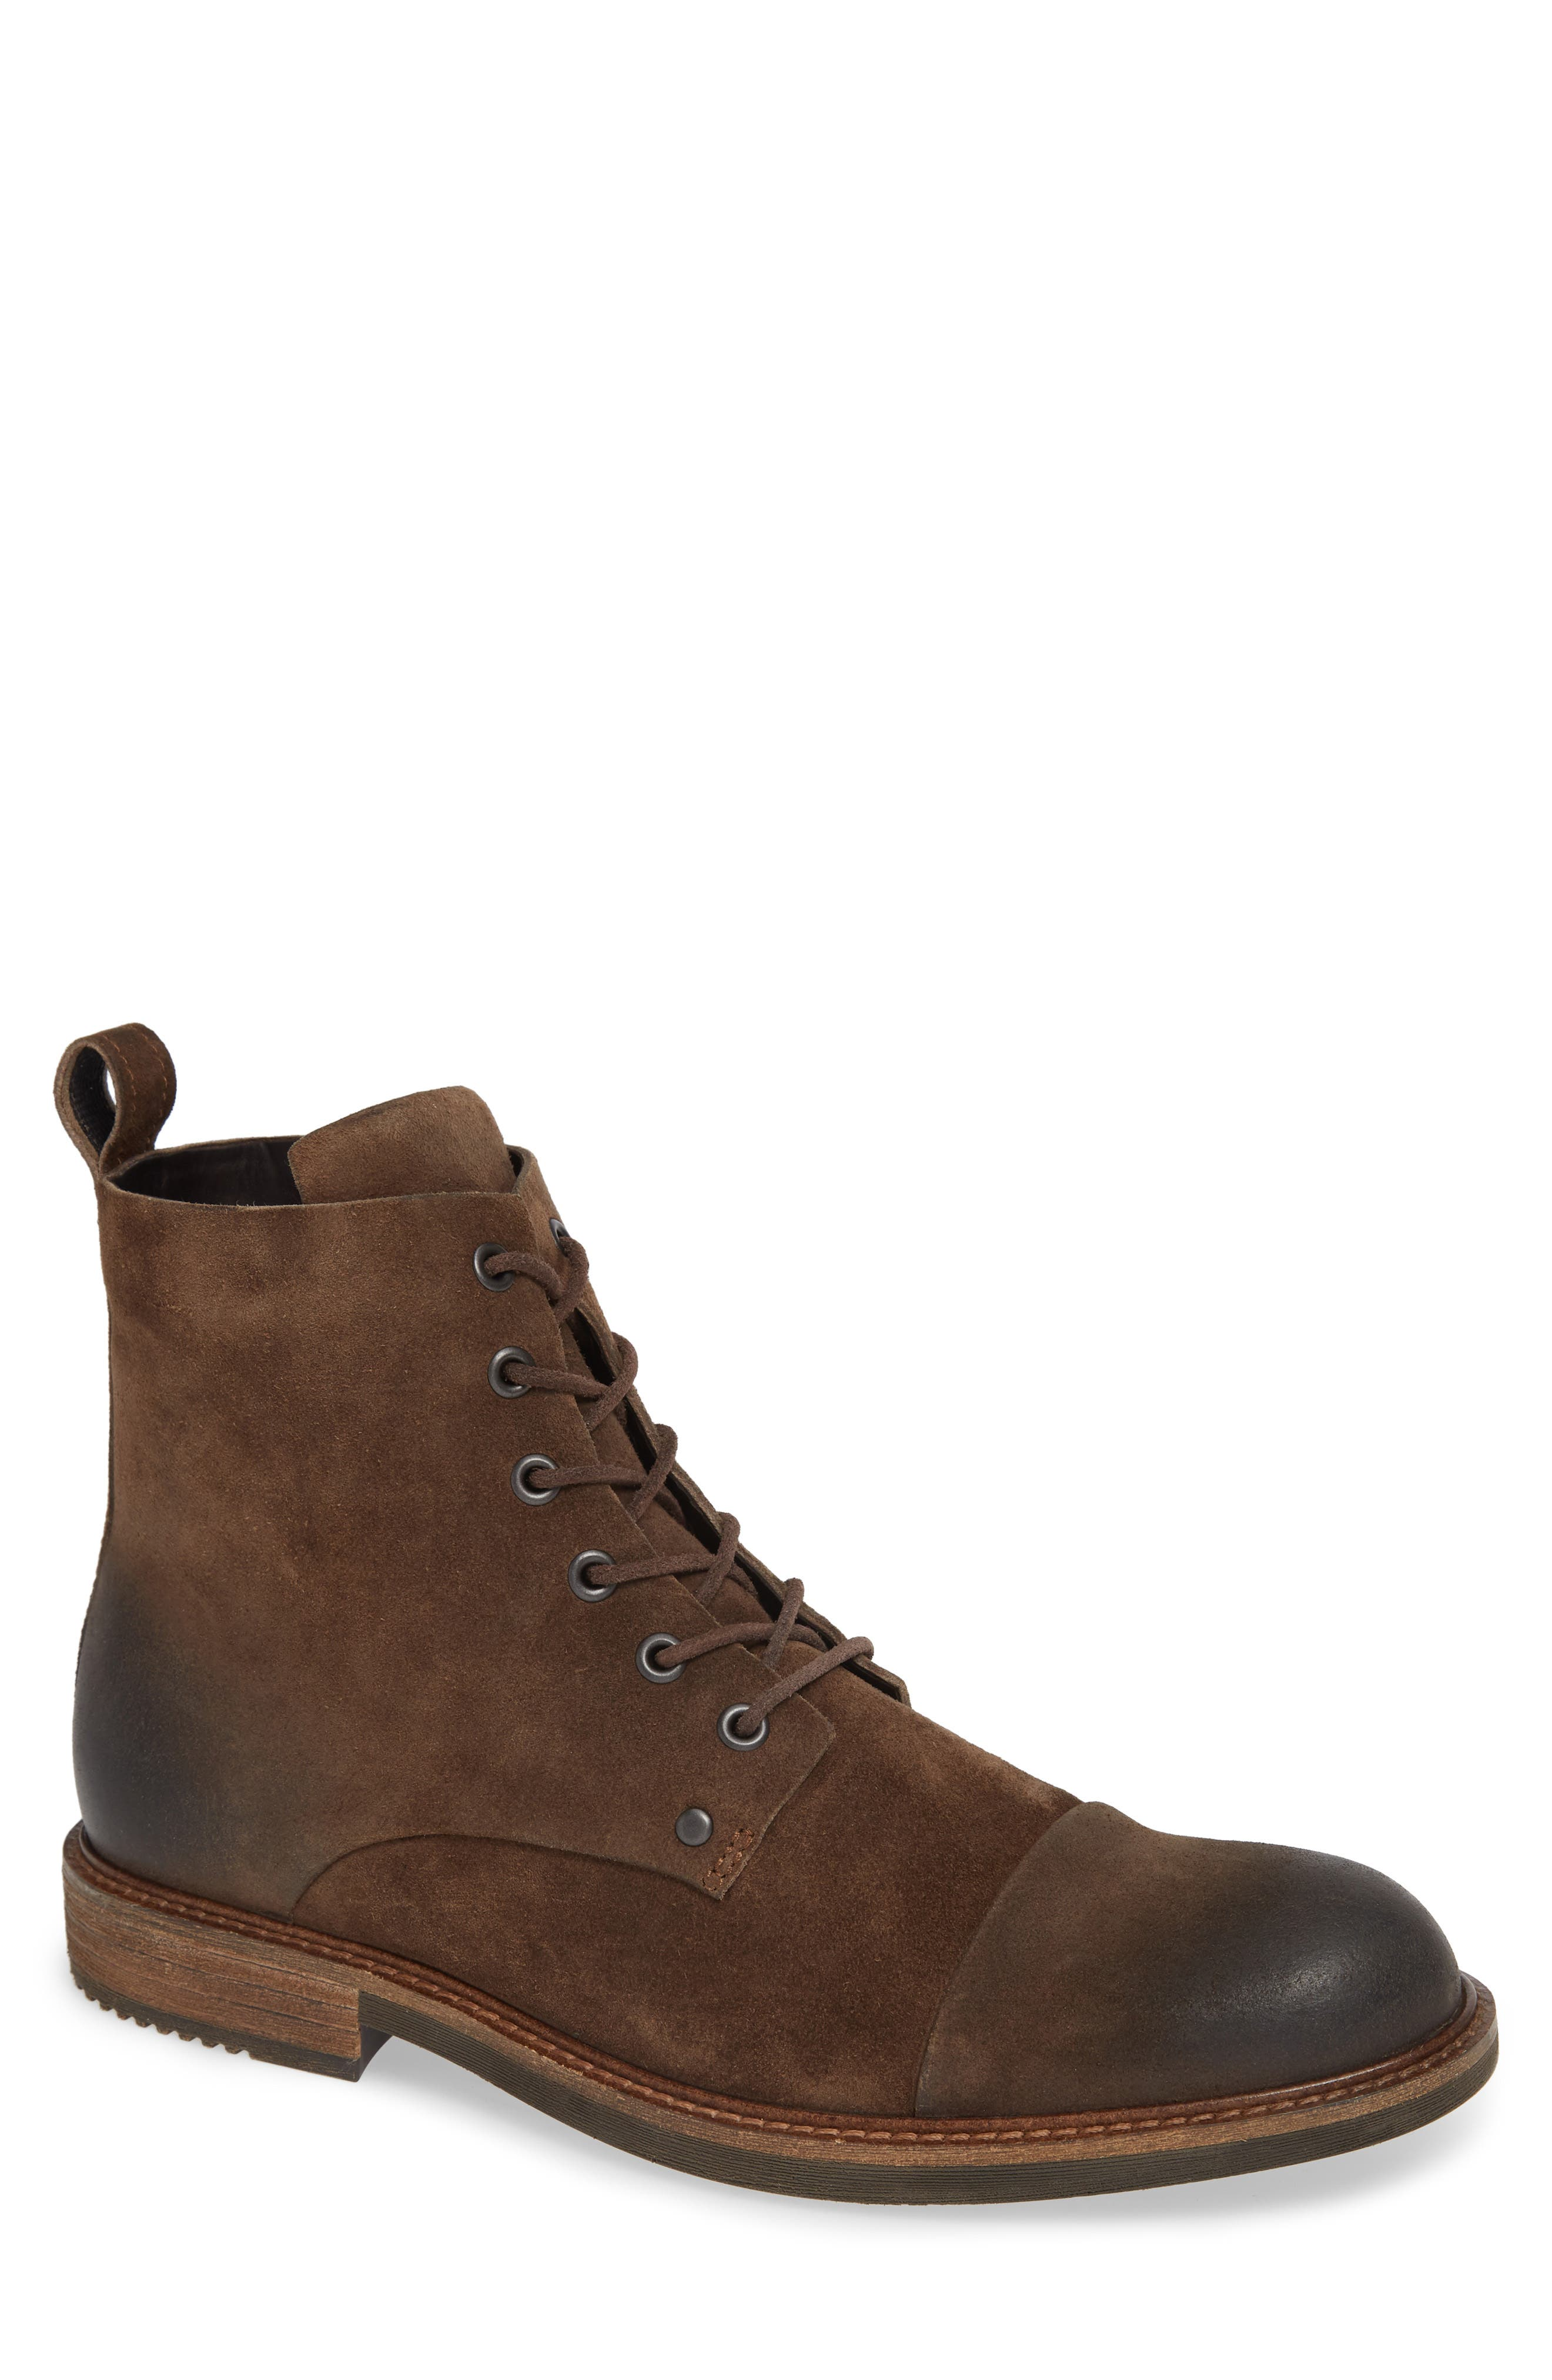 ecco boots at nordstrom